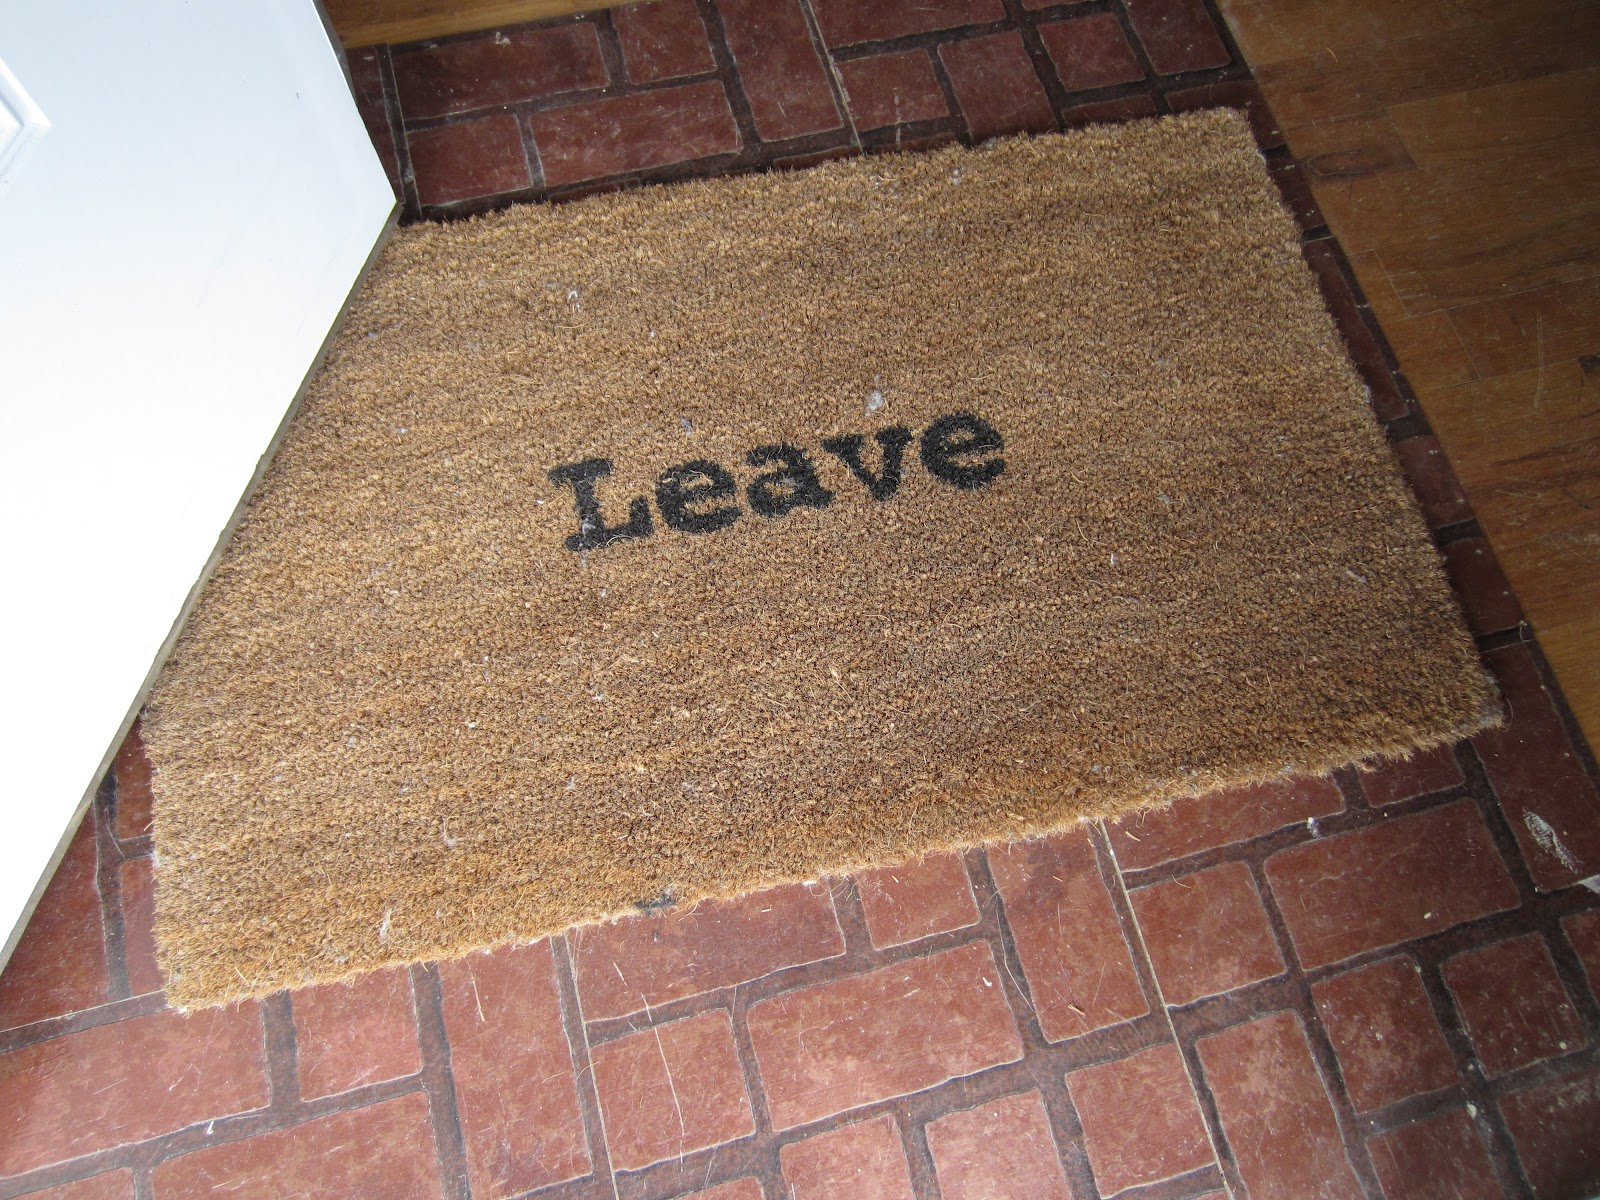 Leave Welcome Mat Go Go Kittykat Don 39t Go Away Mad Just Go Away